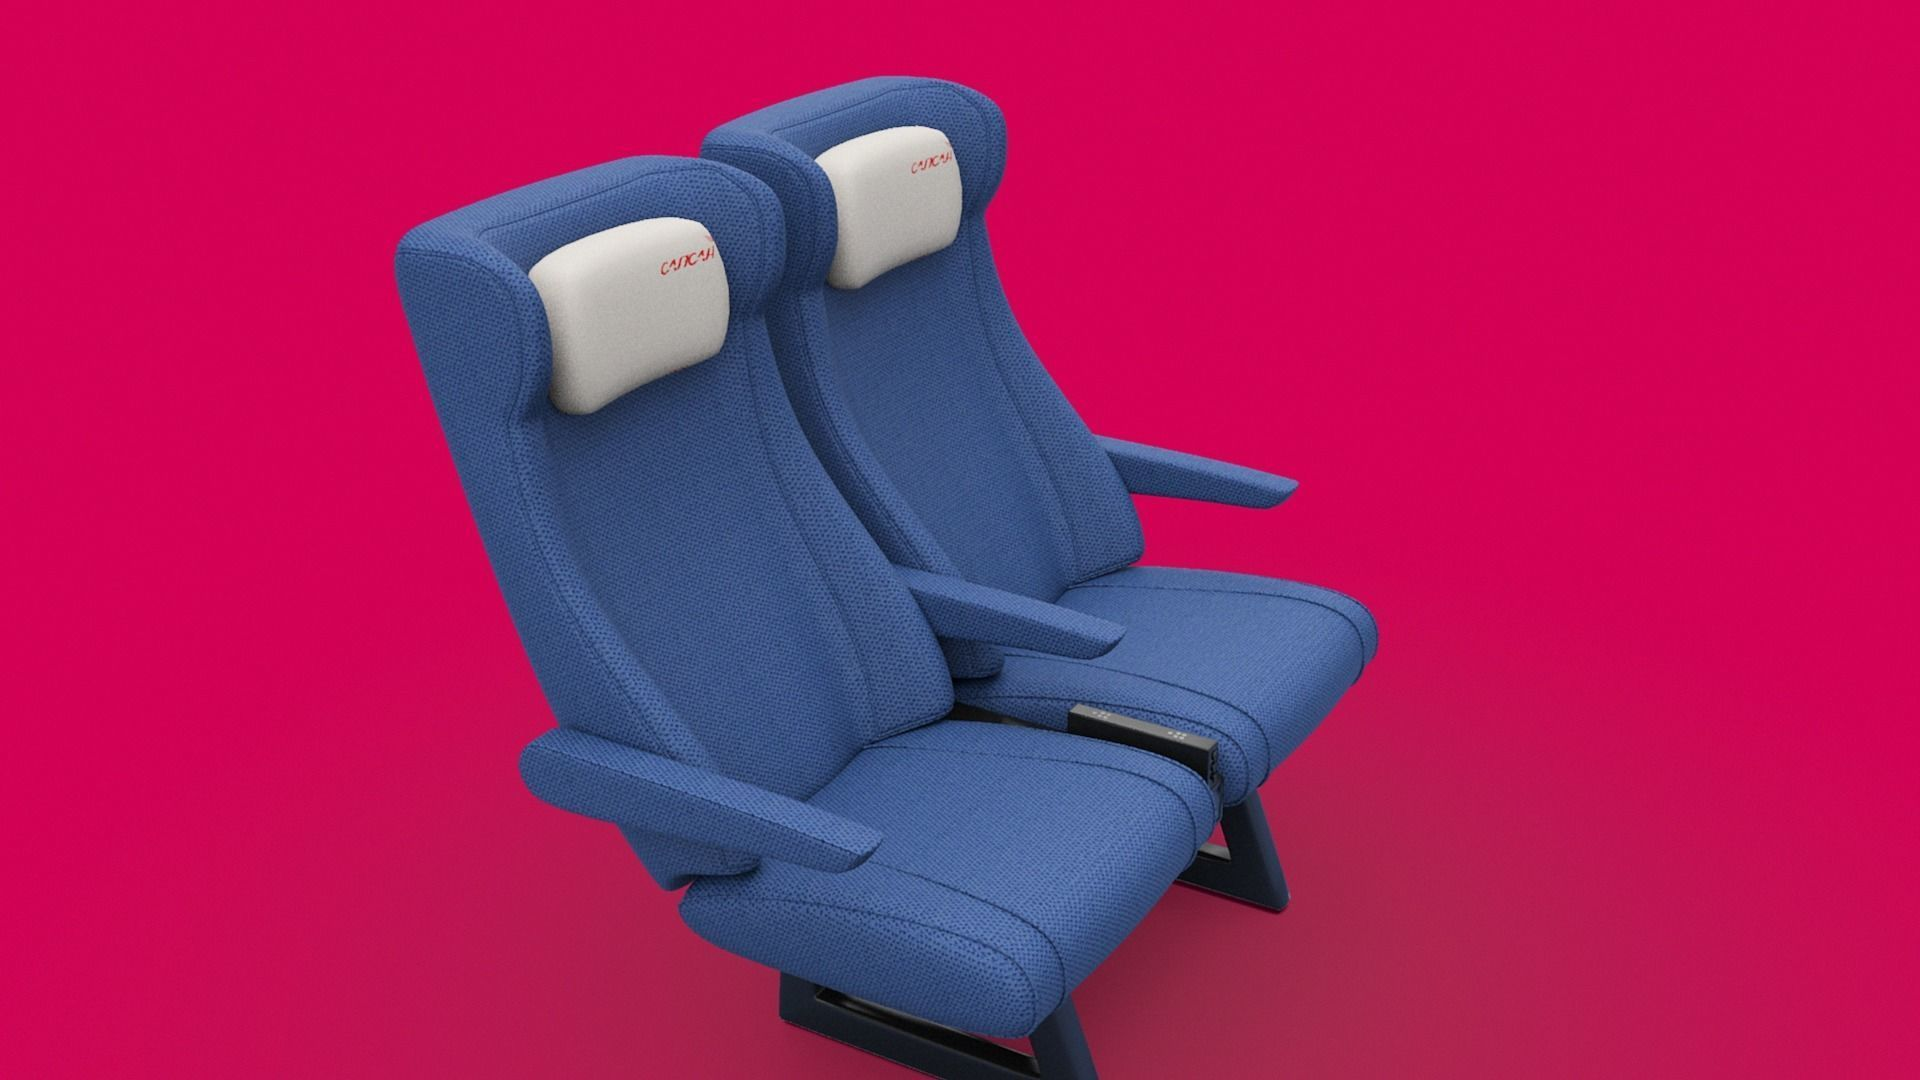 Train seat Plane passenger seats with pillow and armrest